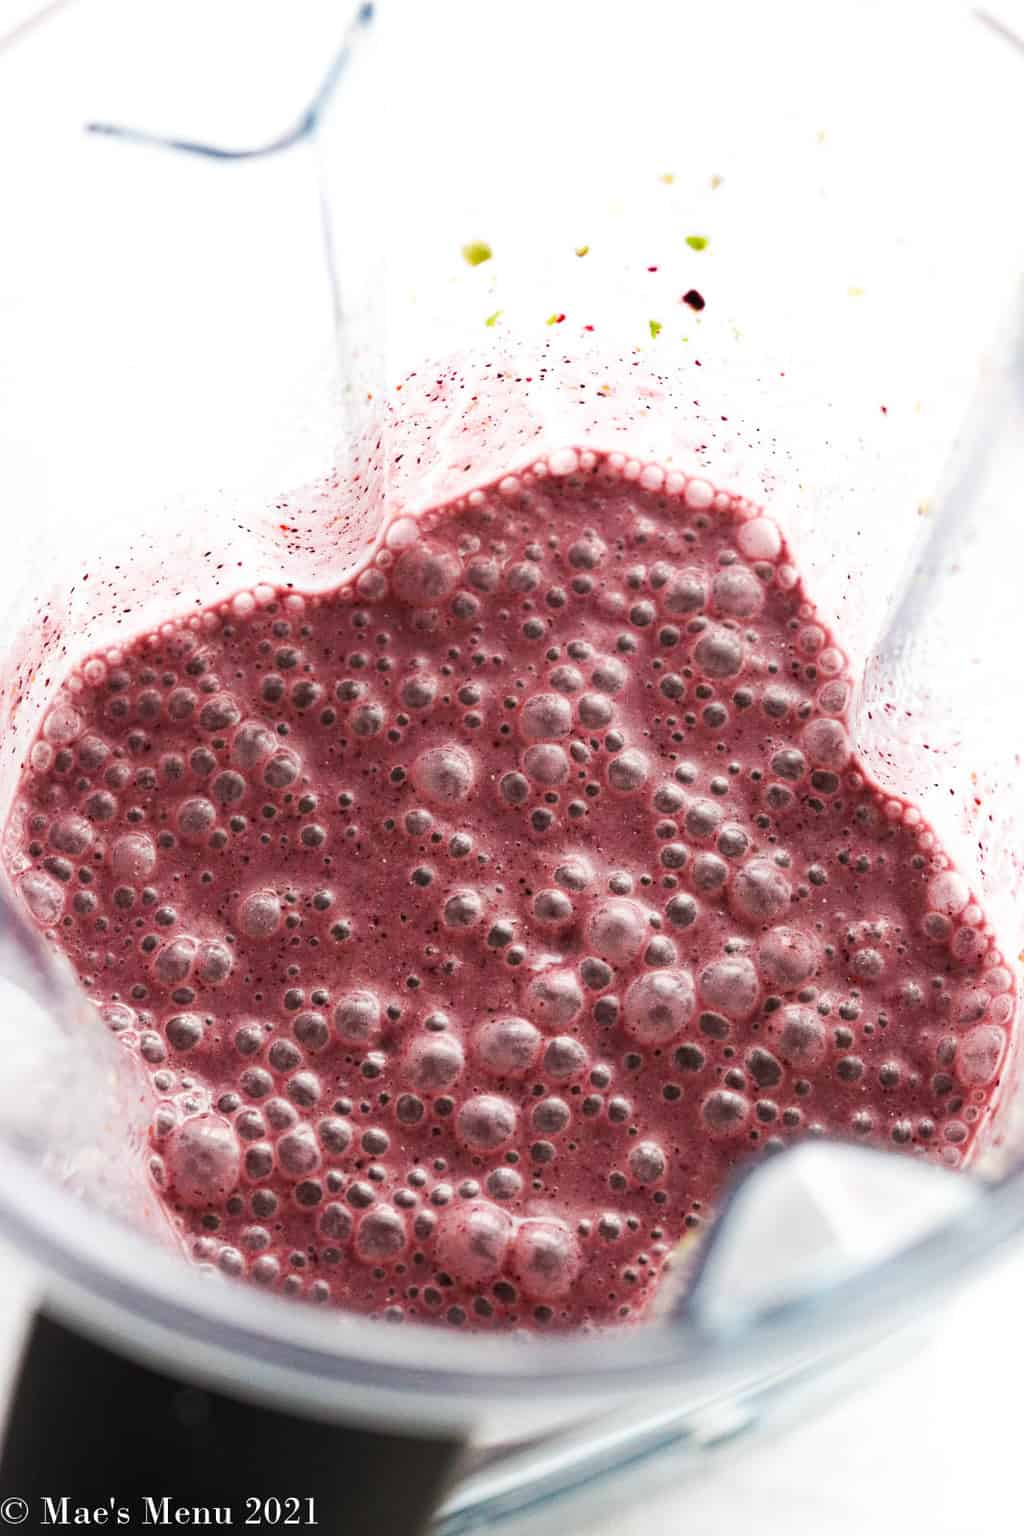 The smoothie in a blender